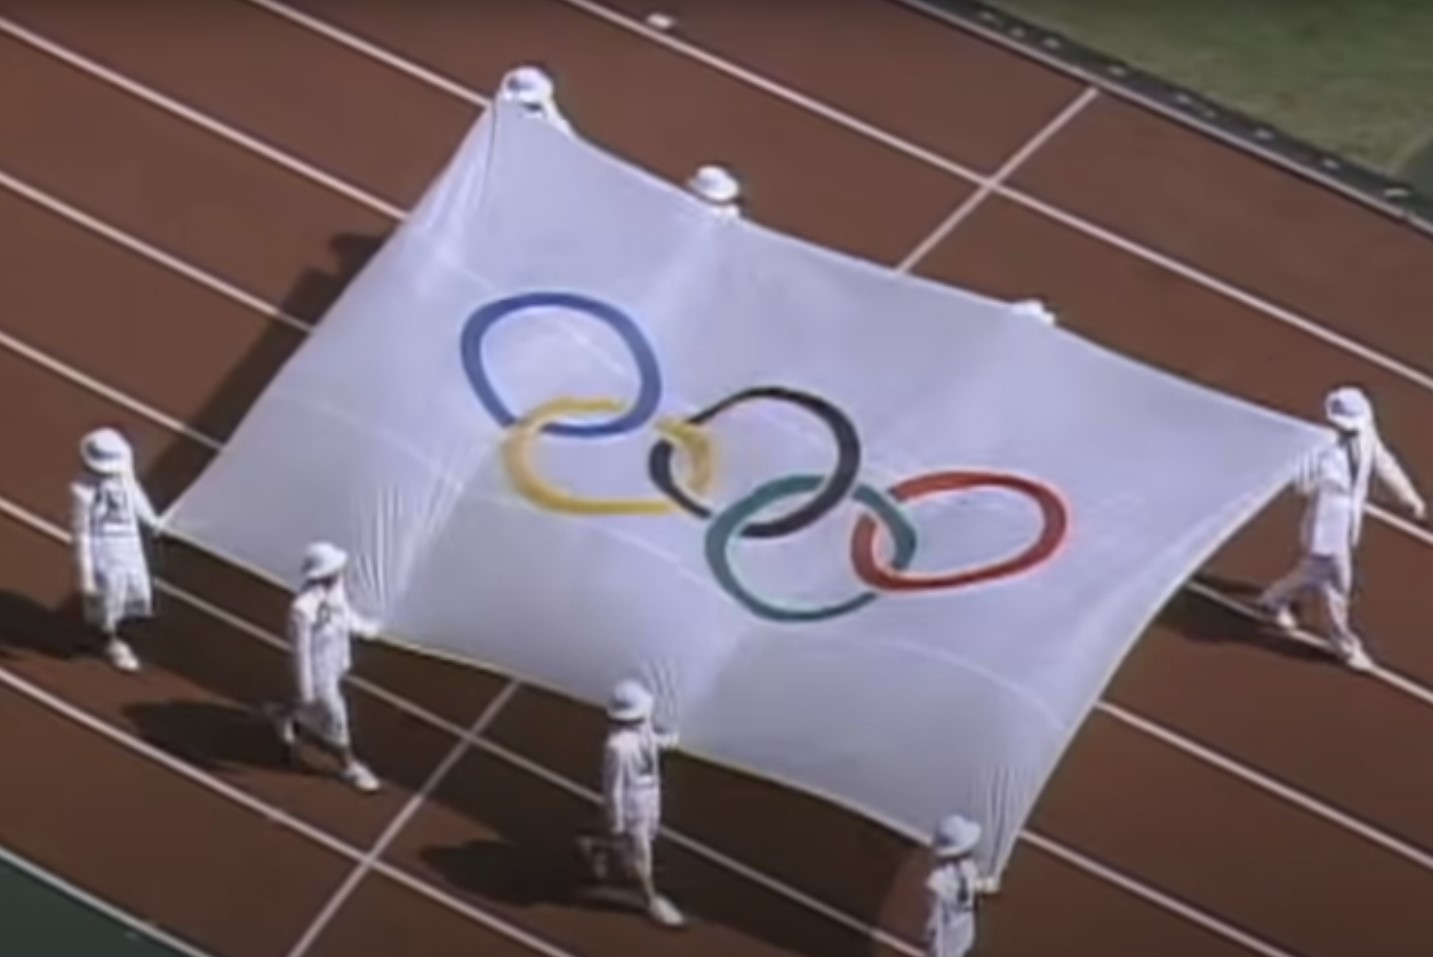 [One Moment In Time - Olympics]